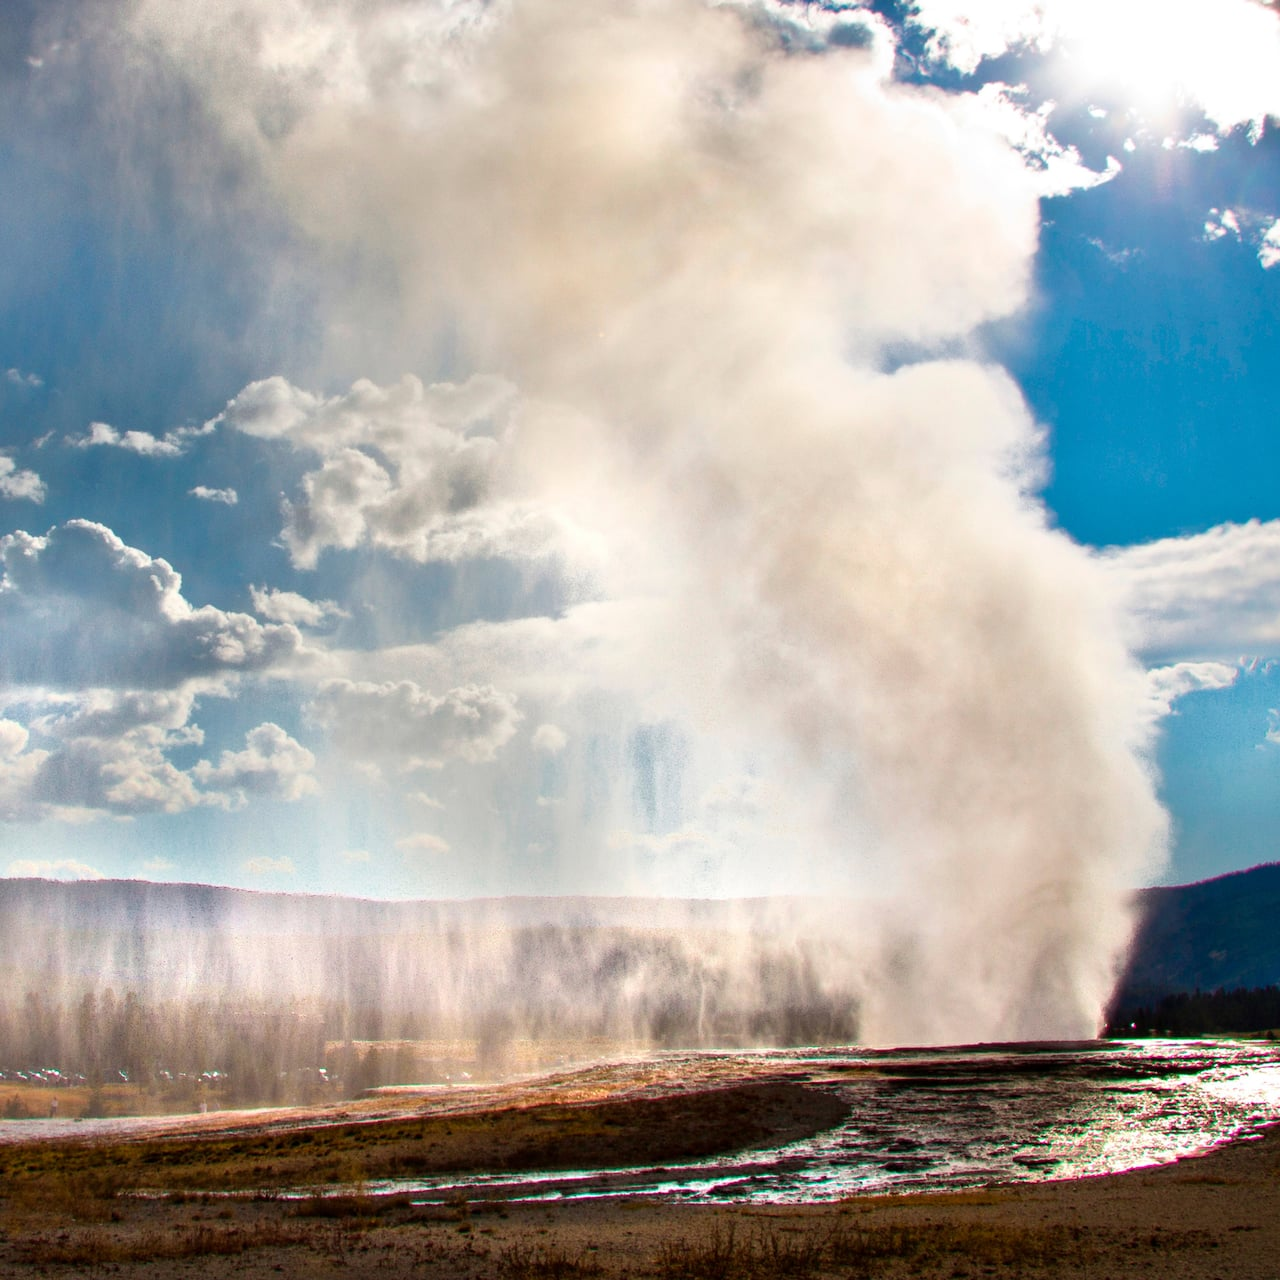 A geyser erupts at Yellowstone National Park